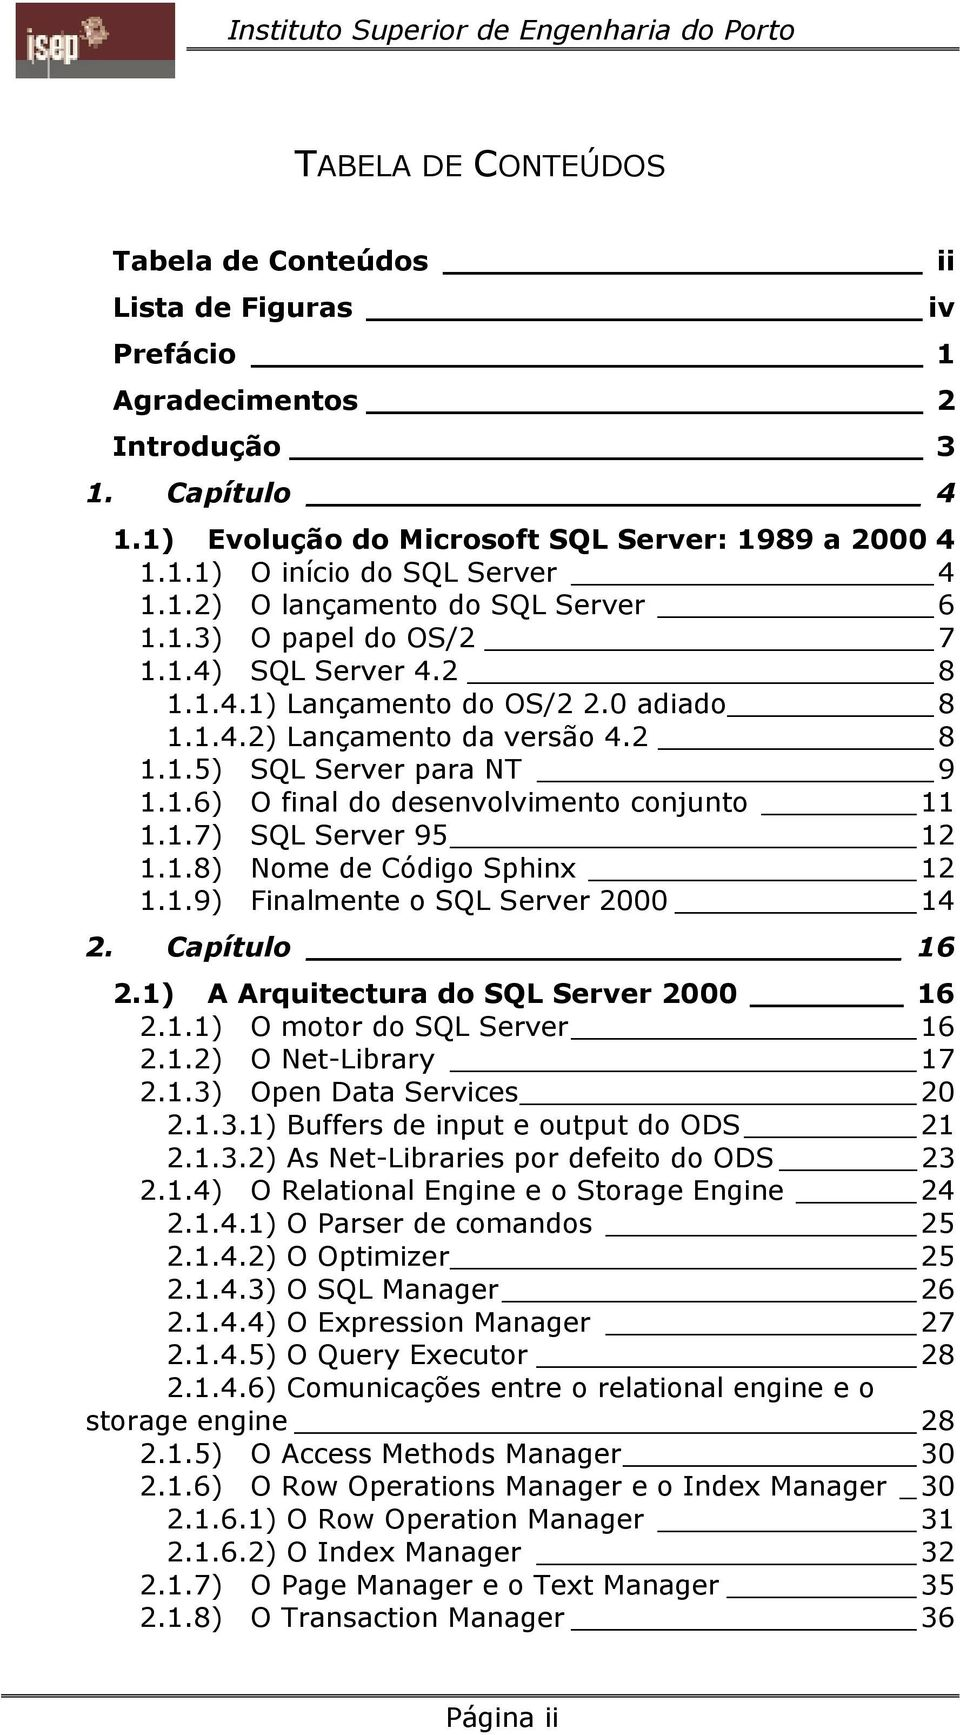 1.7) SQL Server 95 12 1.1.8) Nome de Código Sphinx 12 1.1.9) Finalmente o SQL Server 2000 14 2. Capítulo 16 2.1) A Arquitectura do SQL Server 2000 16 2.1.1) O motor do SQL Server 16 2.1.2) O Net-Library 17 2.